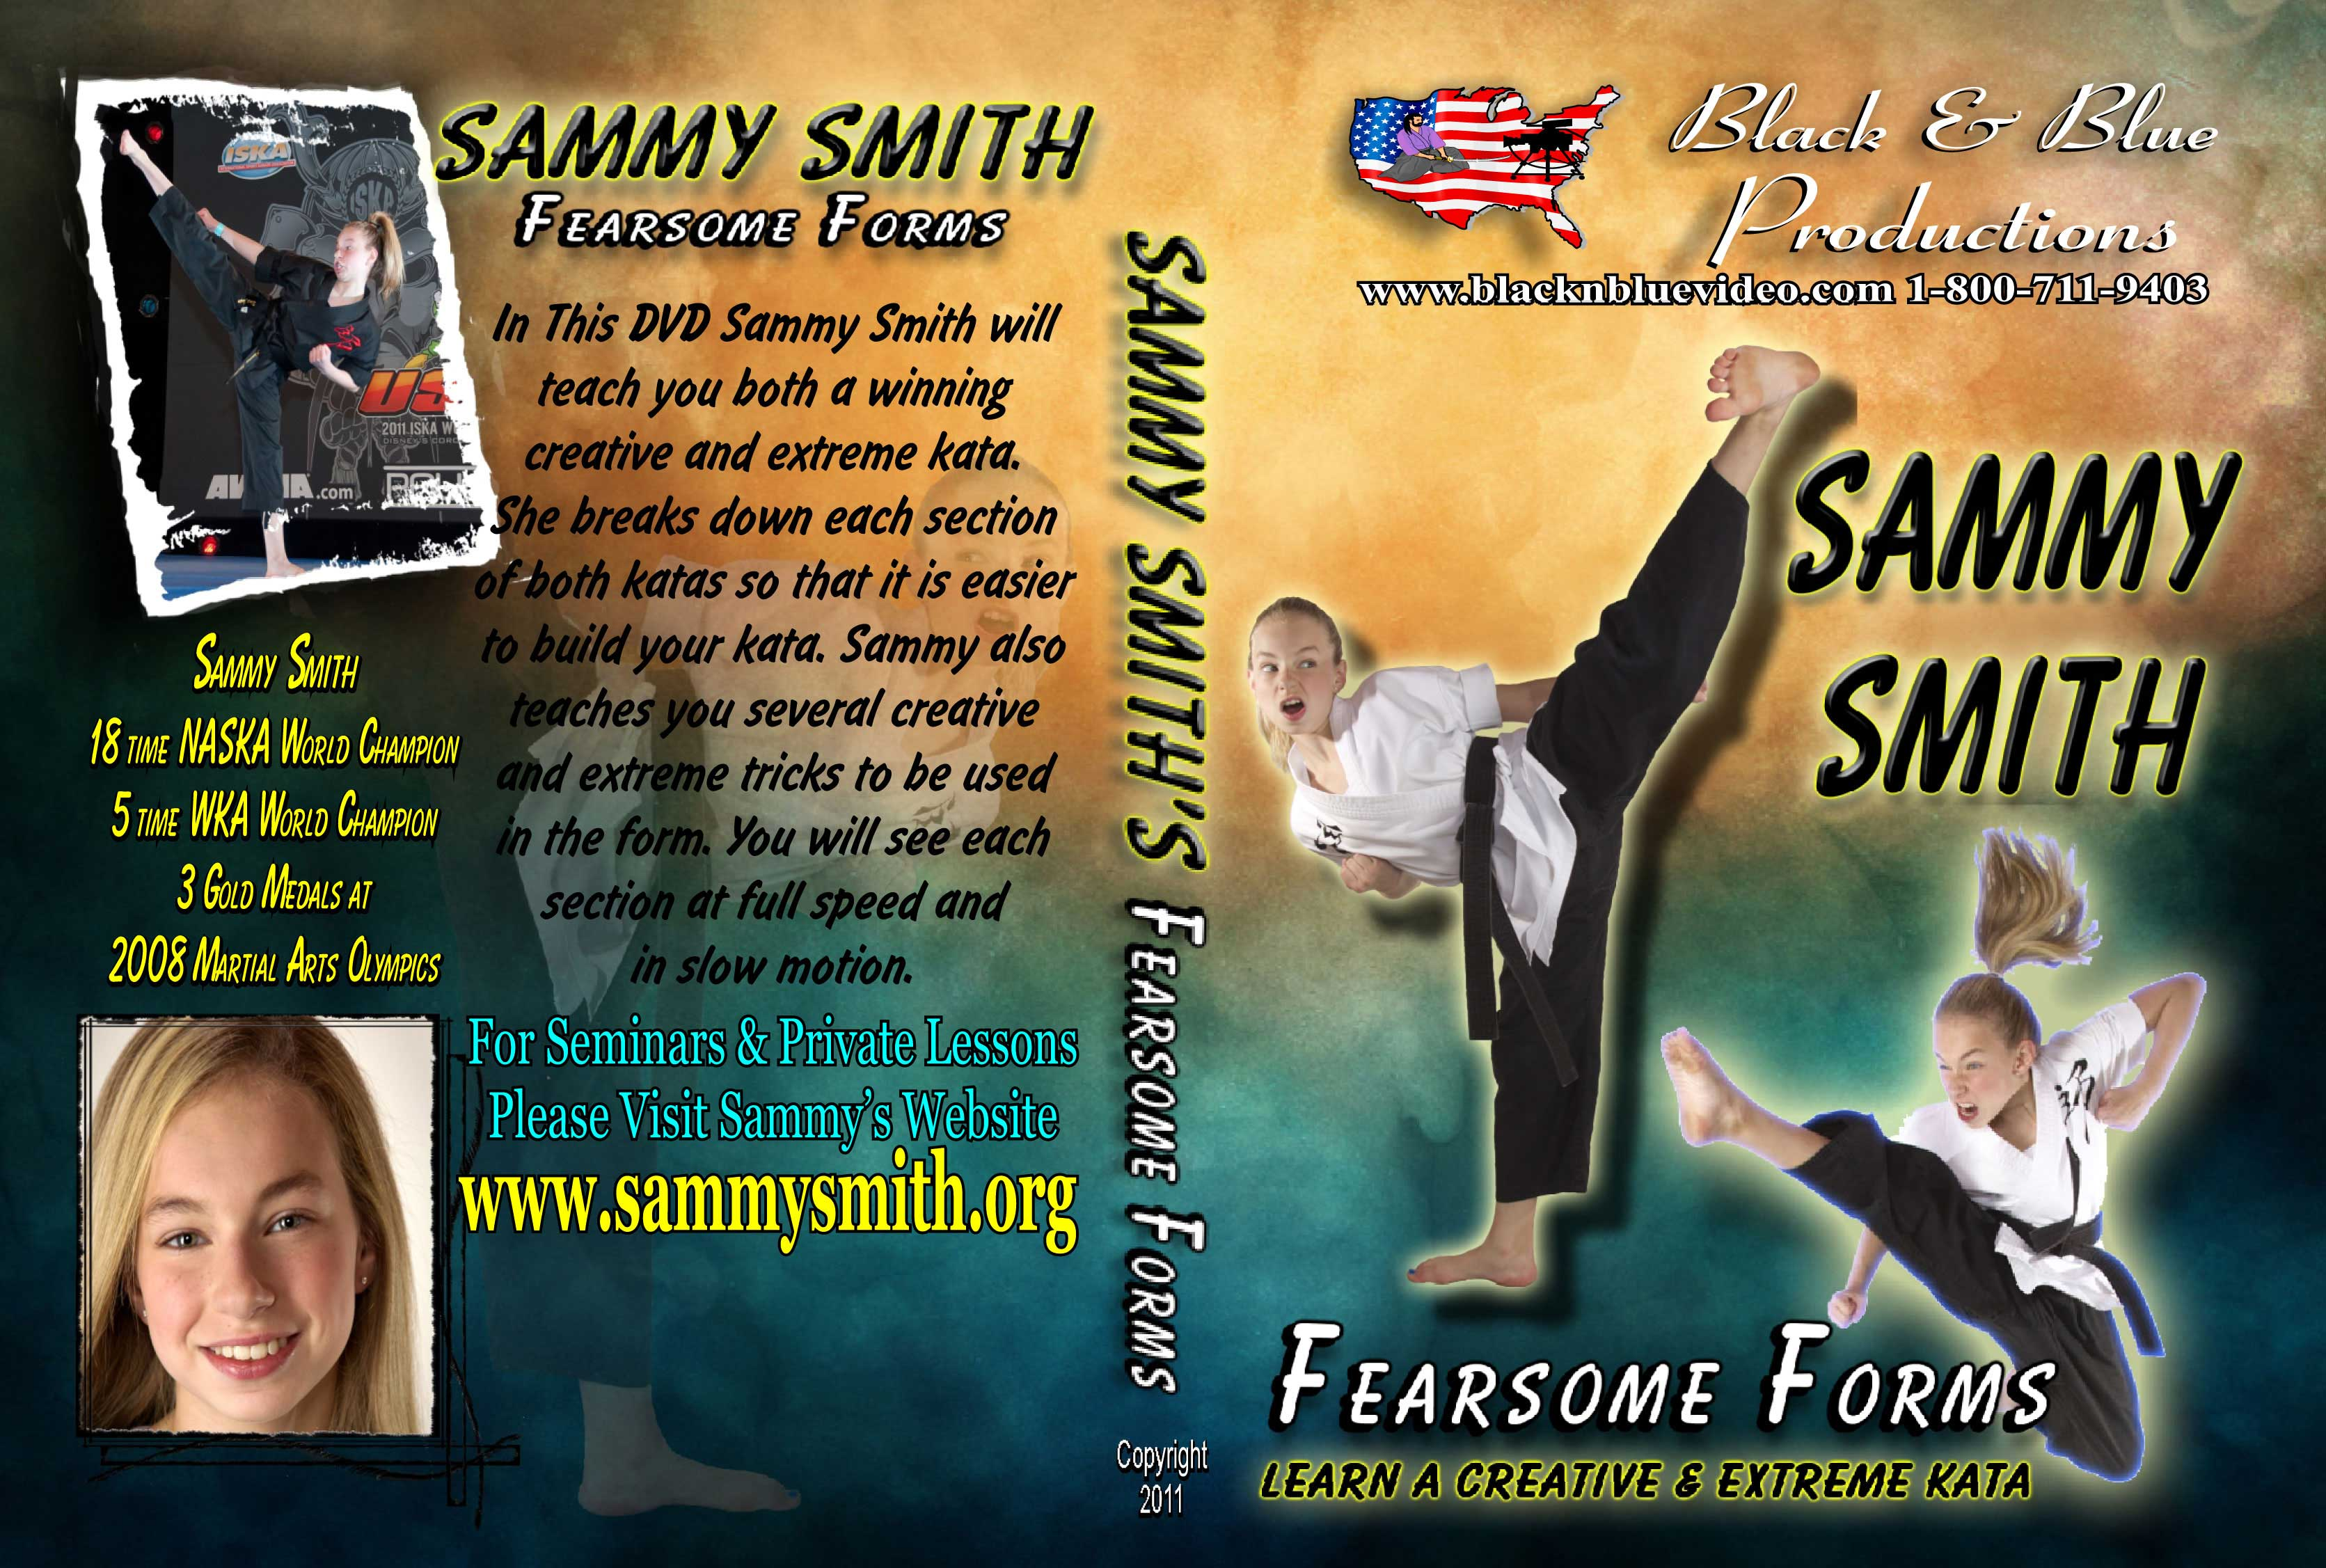 Karate Tournament Champ Sammy Smith Fearsome Forms A Creative & Extreme Kata DVD